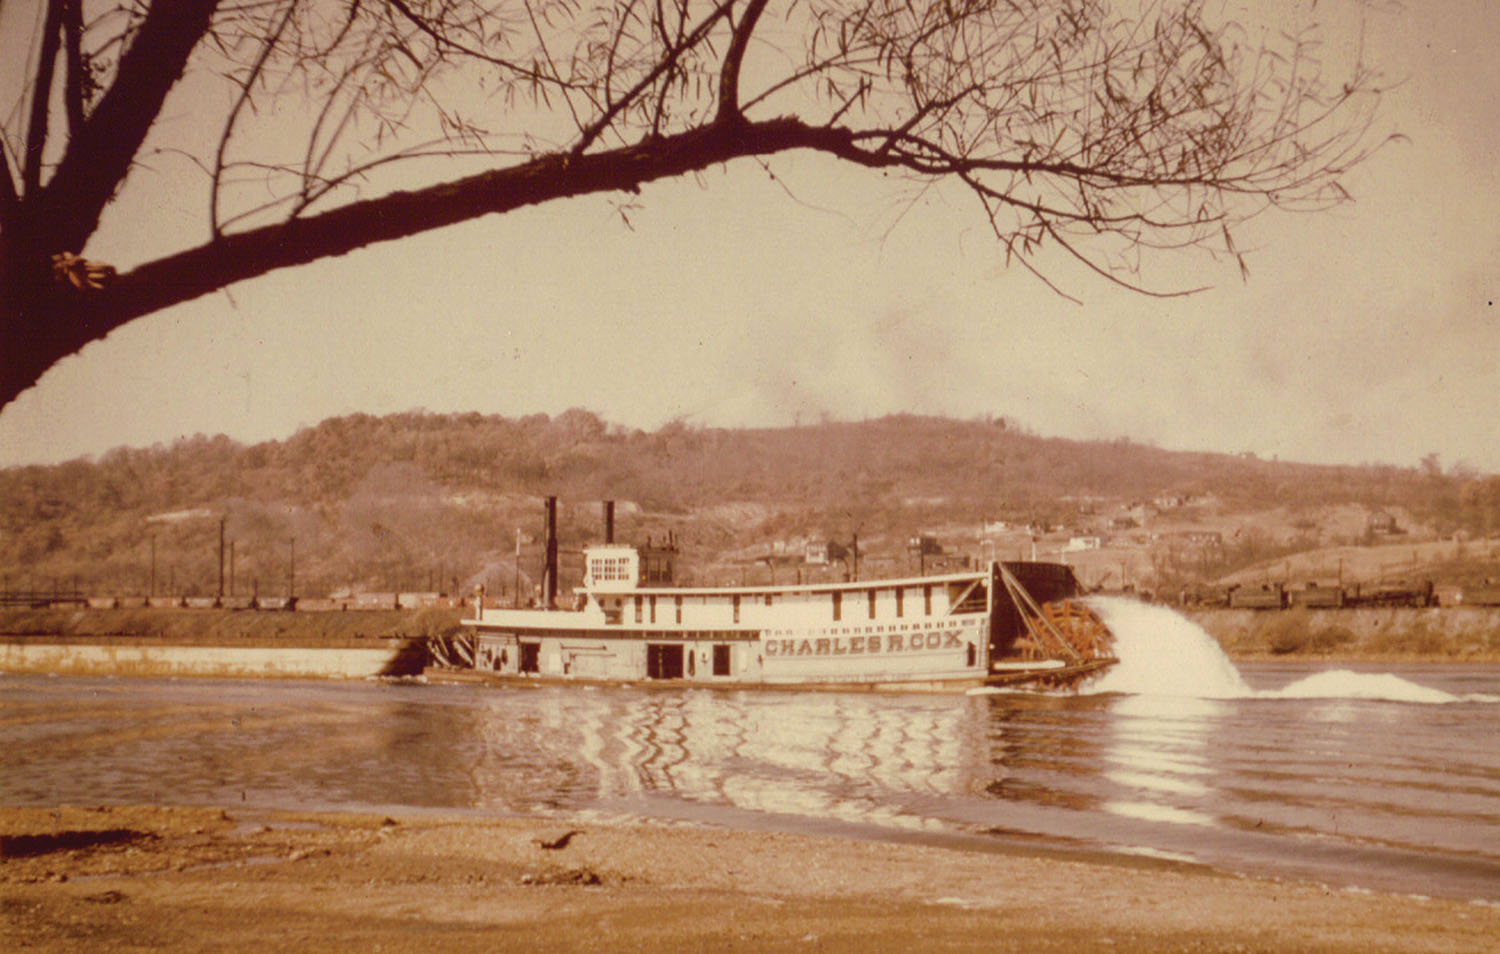 The Charles R. Cox